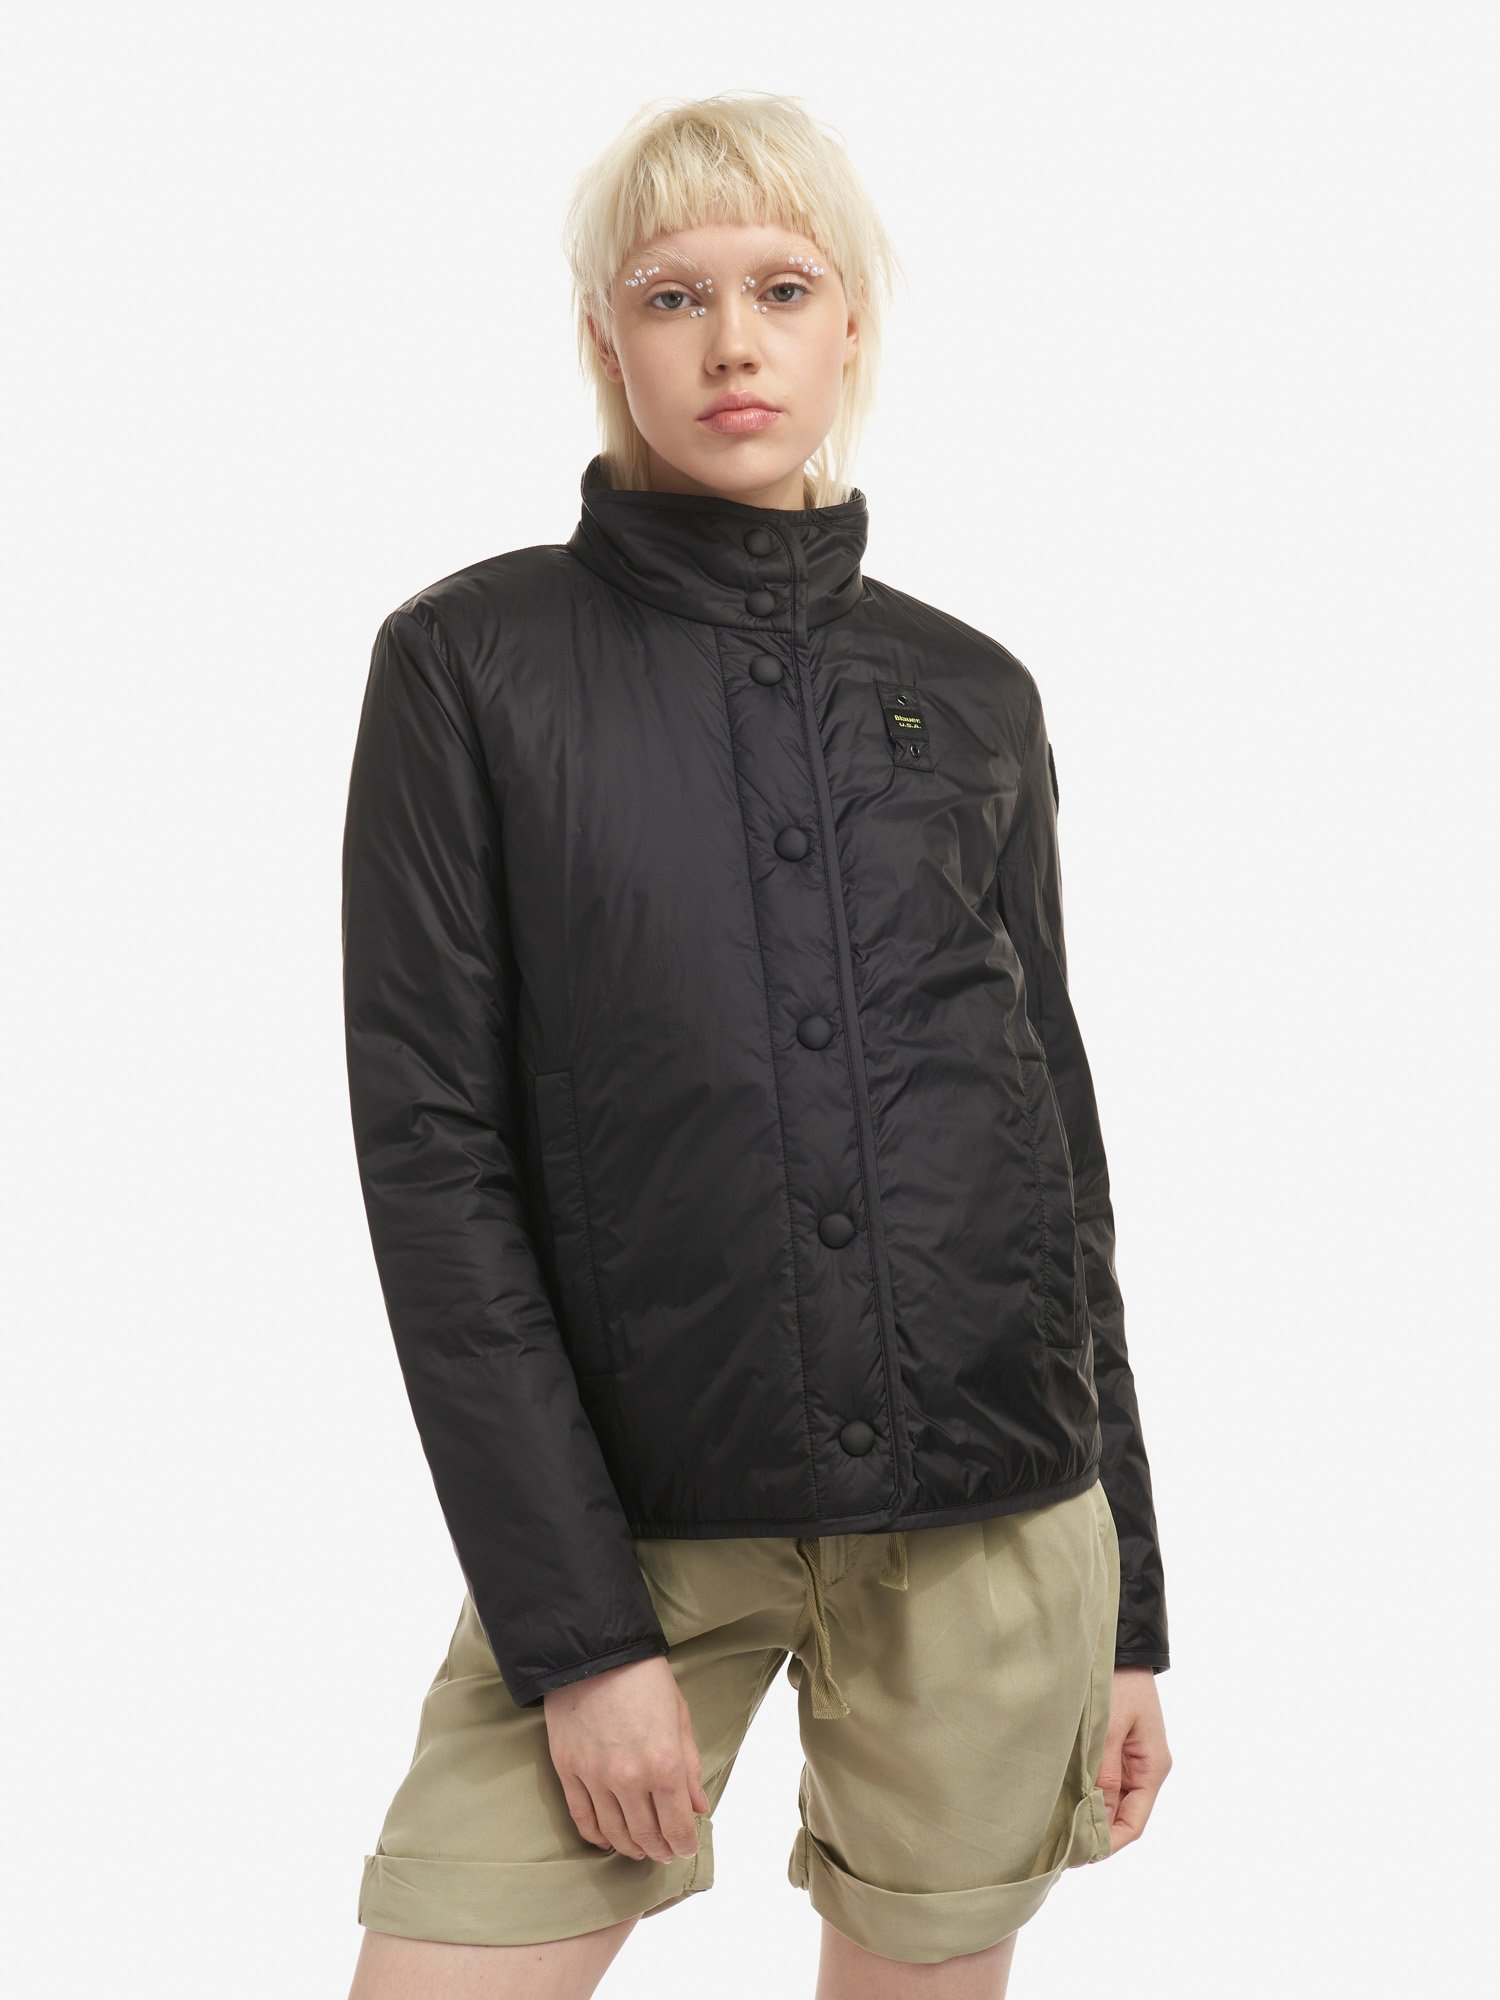 RITA JACKET WITH LIGHTWEIGHT ECO PADDING - Blauer